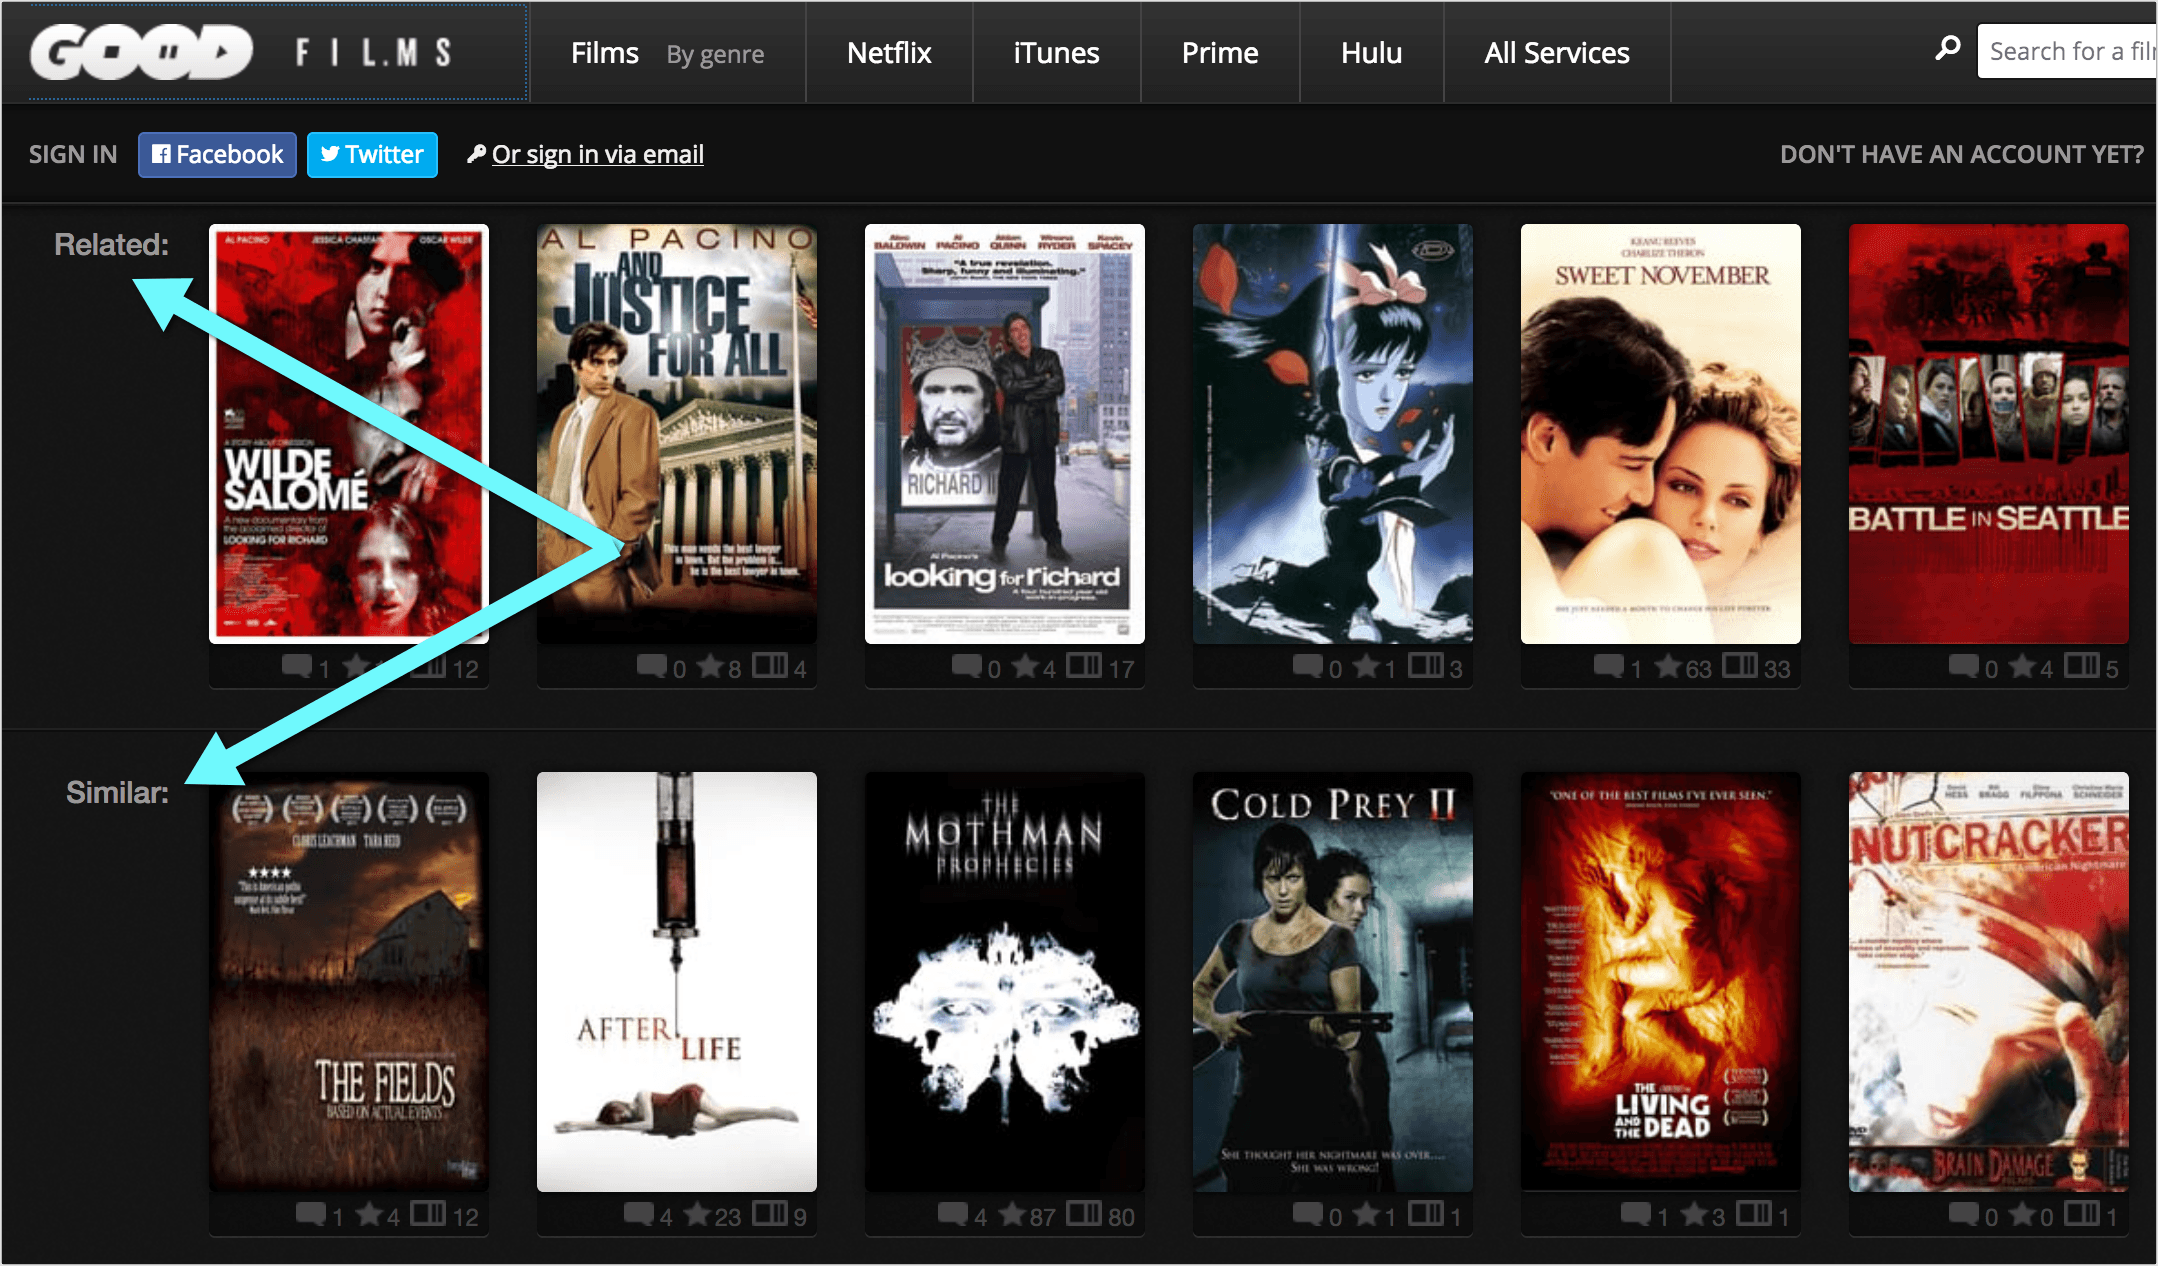 Goodreads for Movies: How to Find Movies to Watch When You're Bored